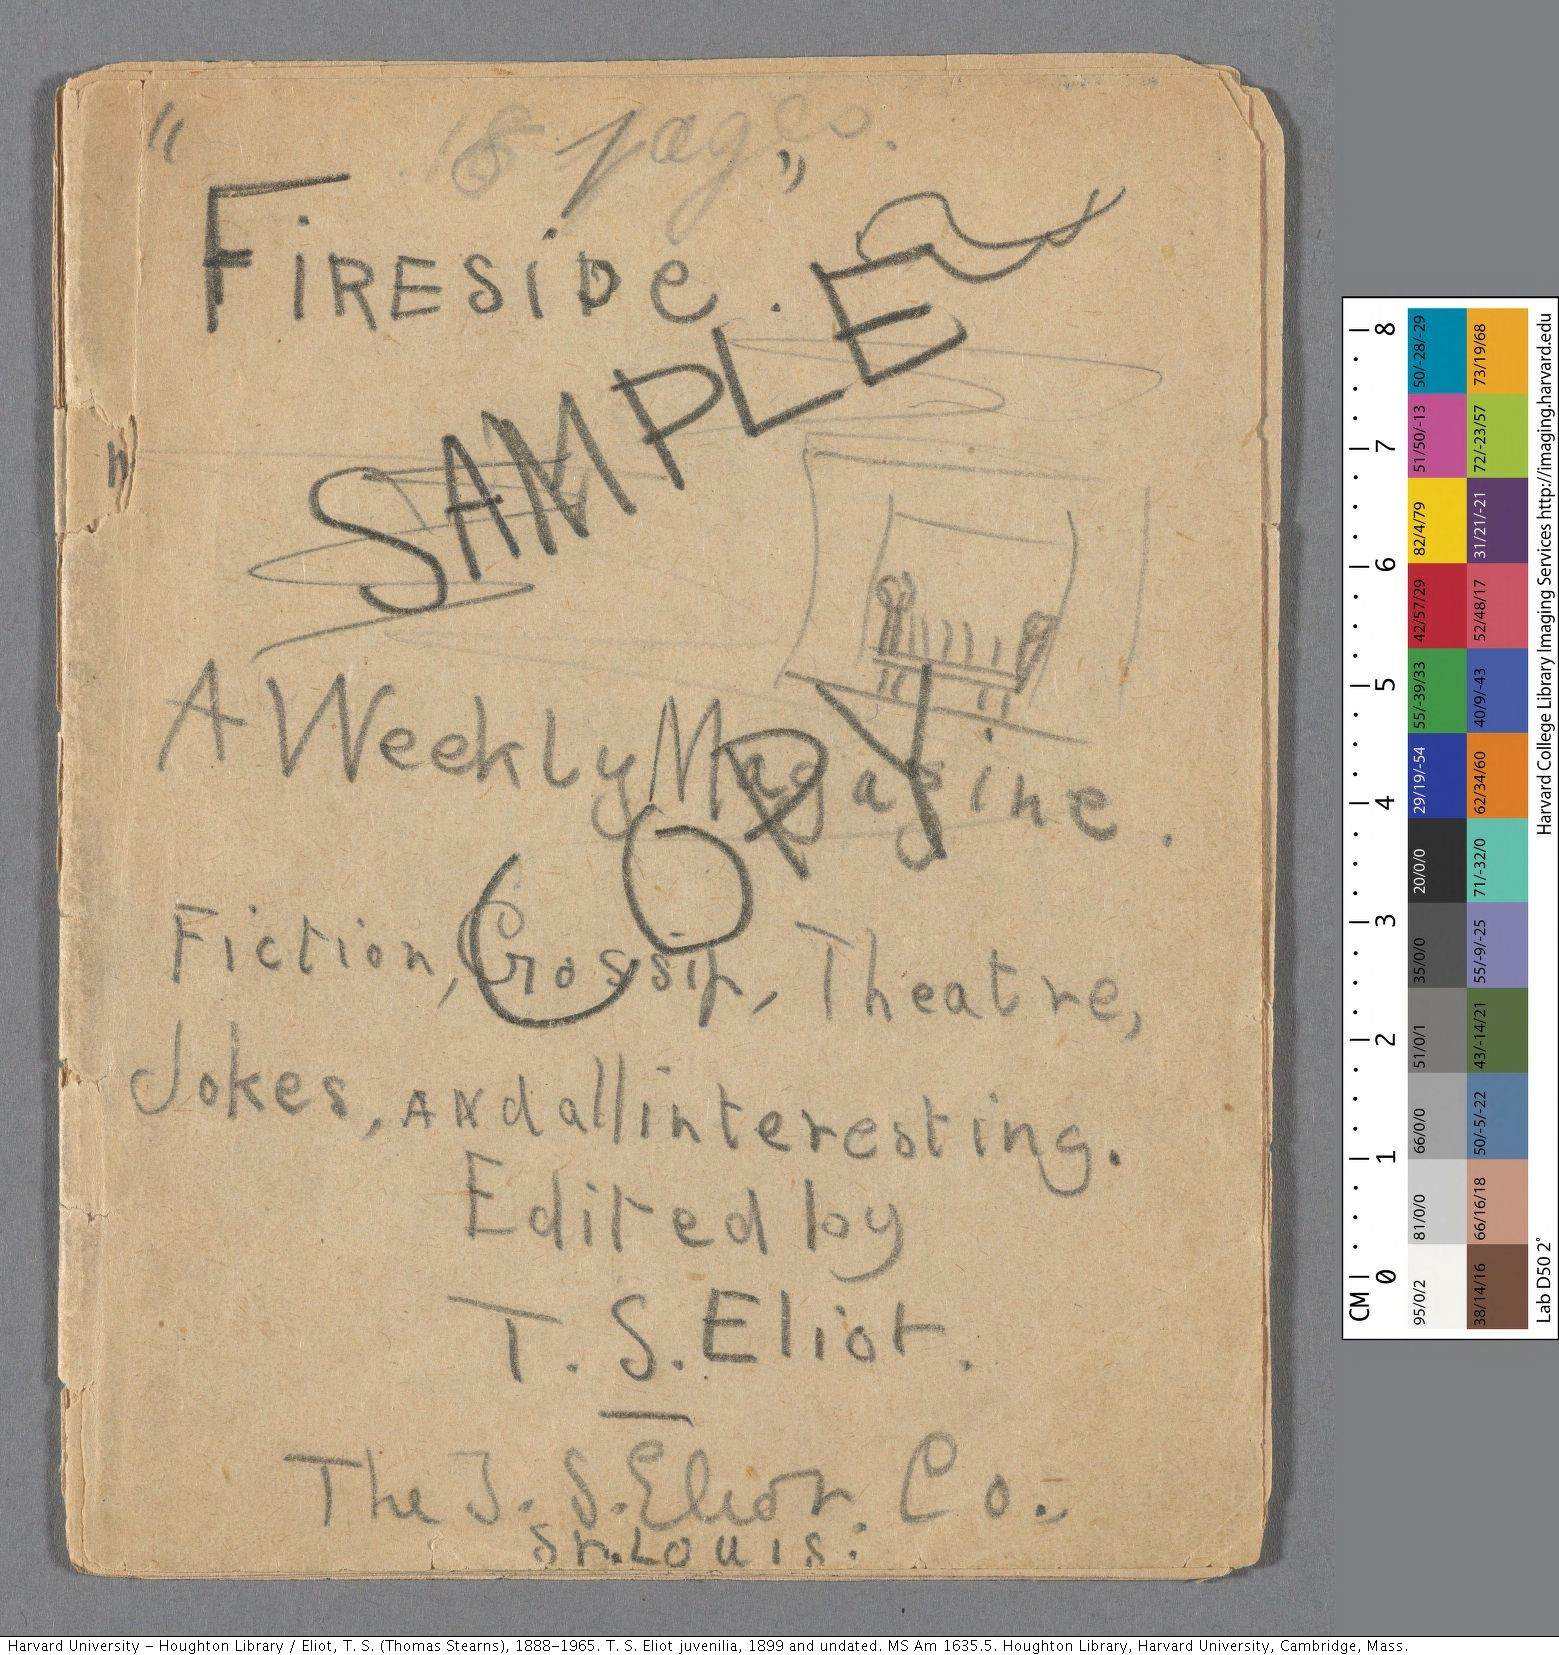 Fireside Magazine. Eliot, T. S. (Thomas Stearns), 1888-1965. T. S. Eliot juvenilia,. MS Am 1635.5.